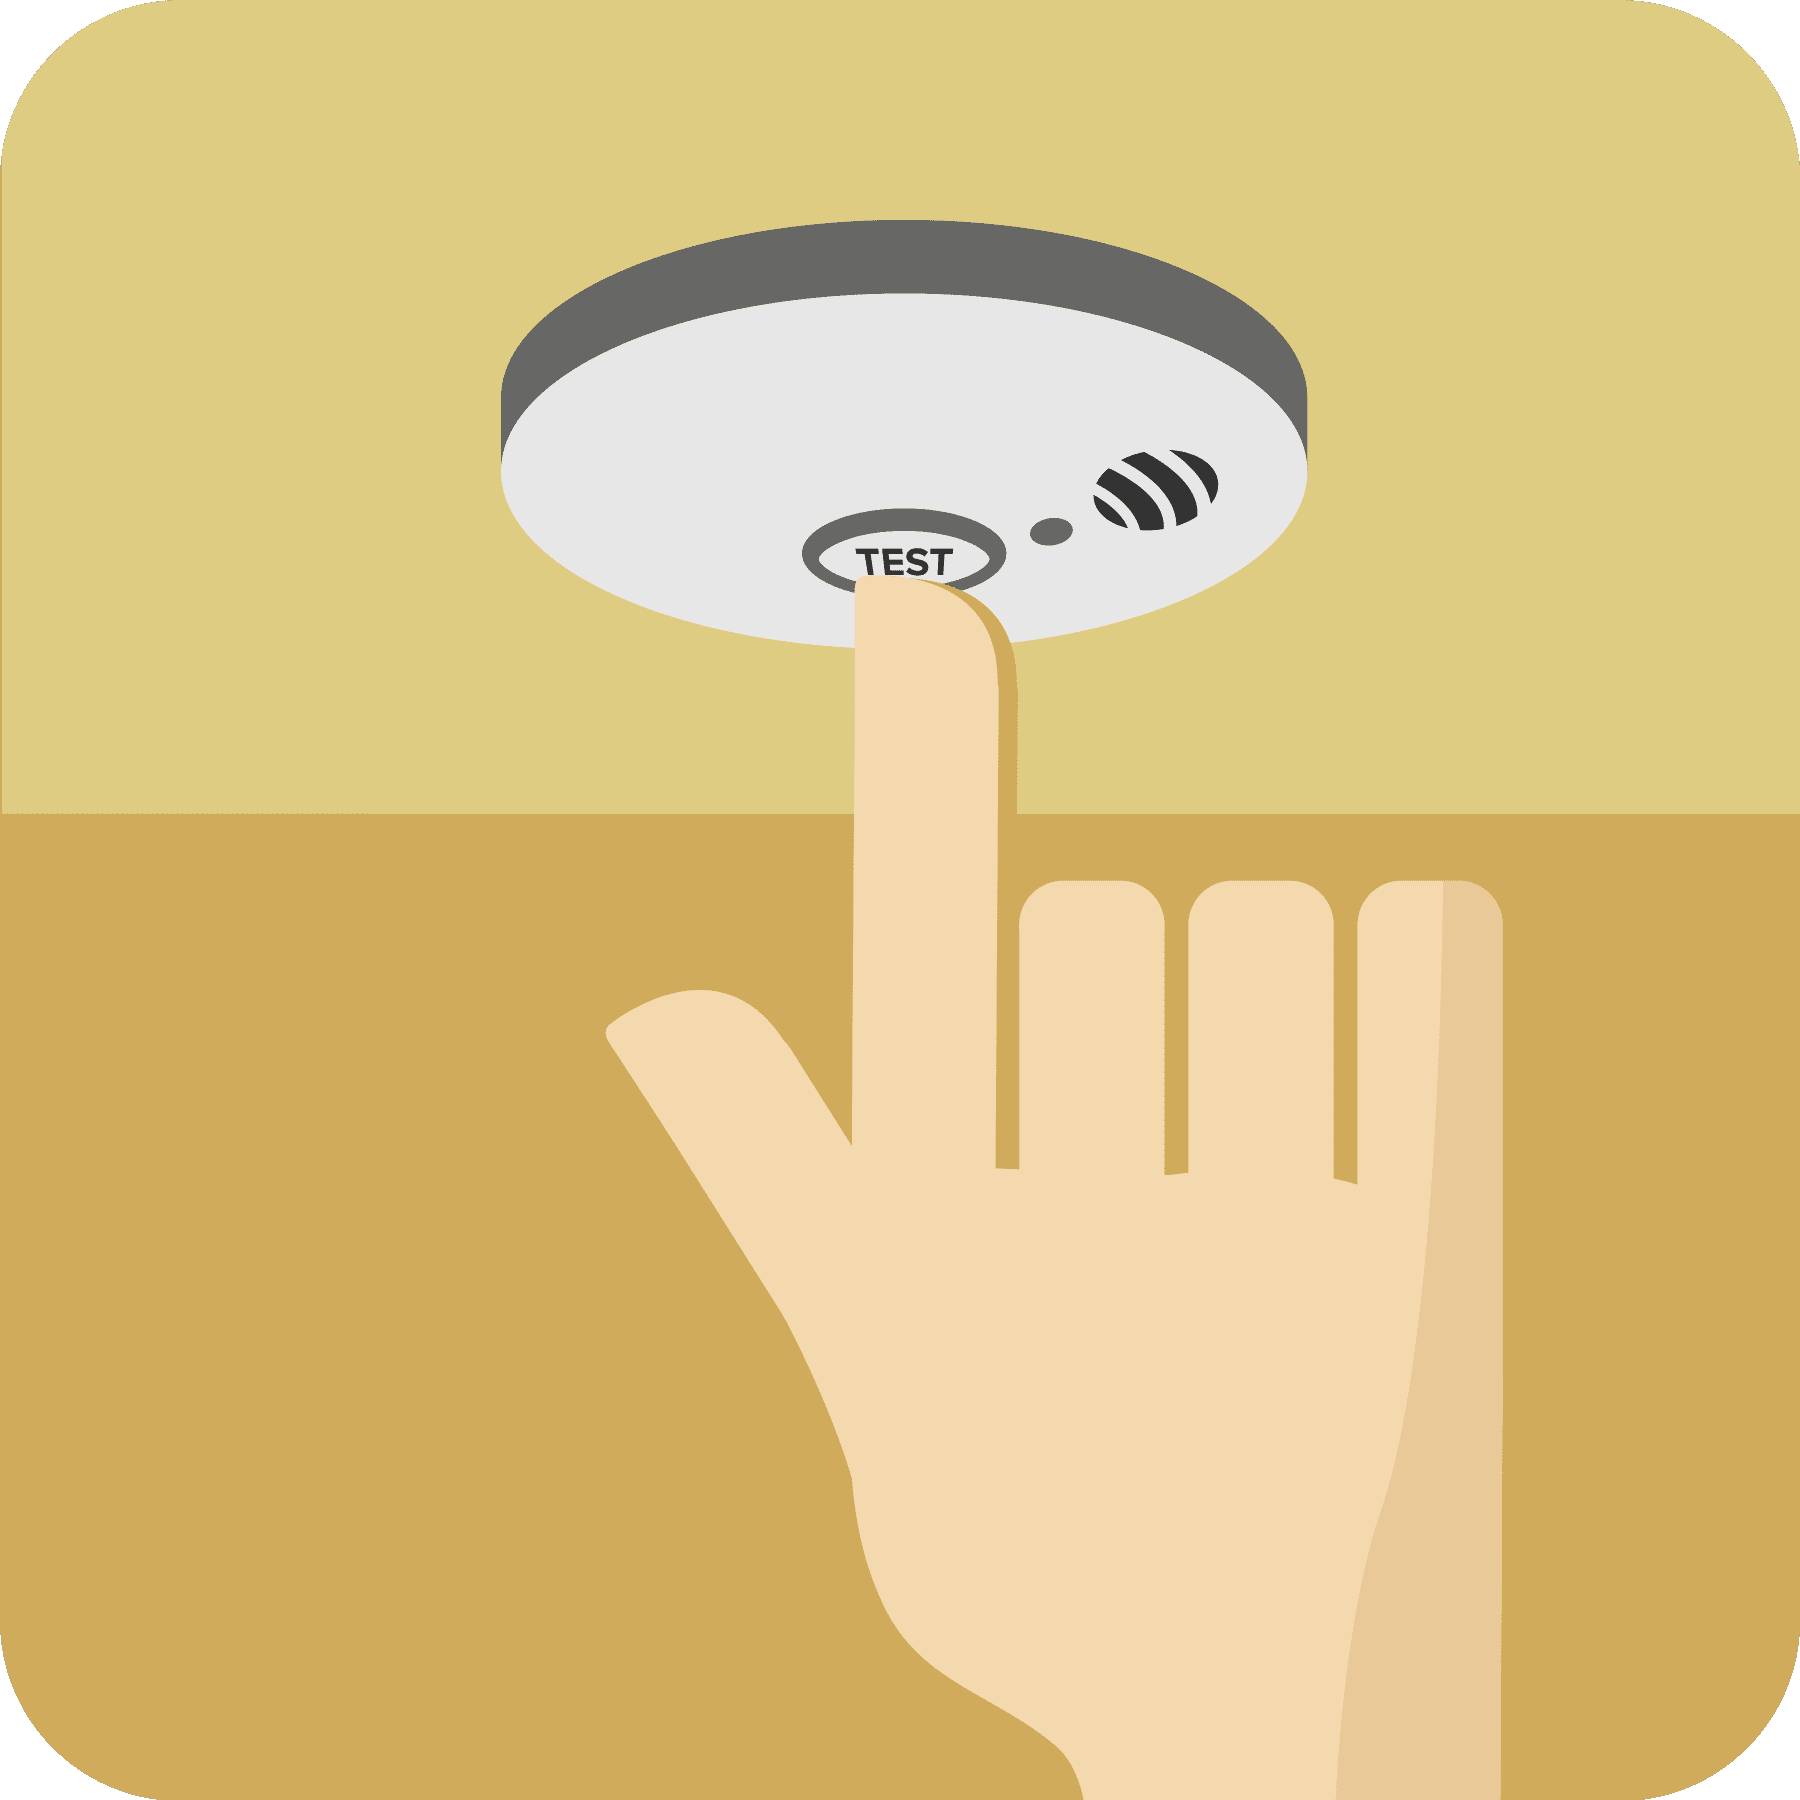 Hand pushing the test button on the smoke alarm.